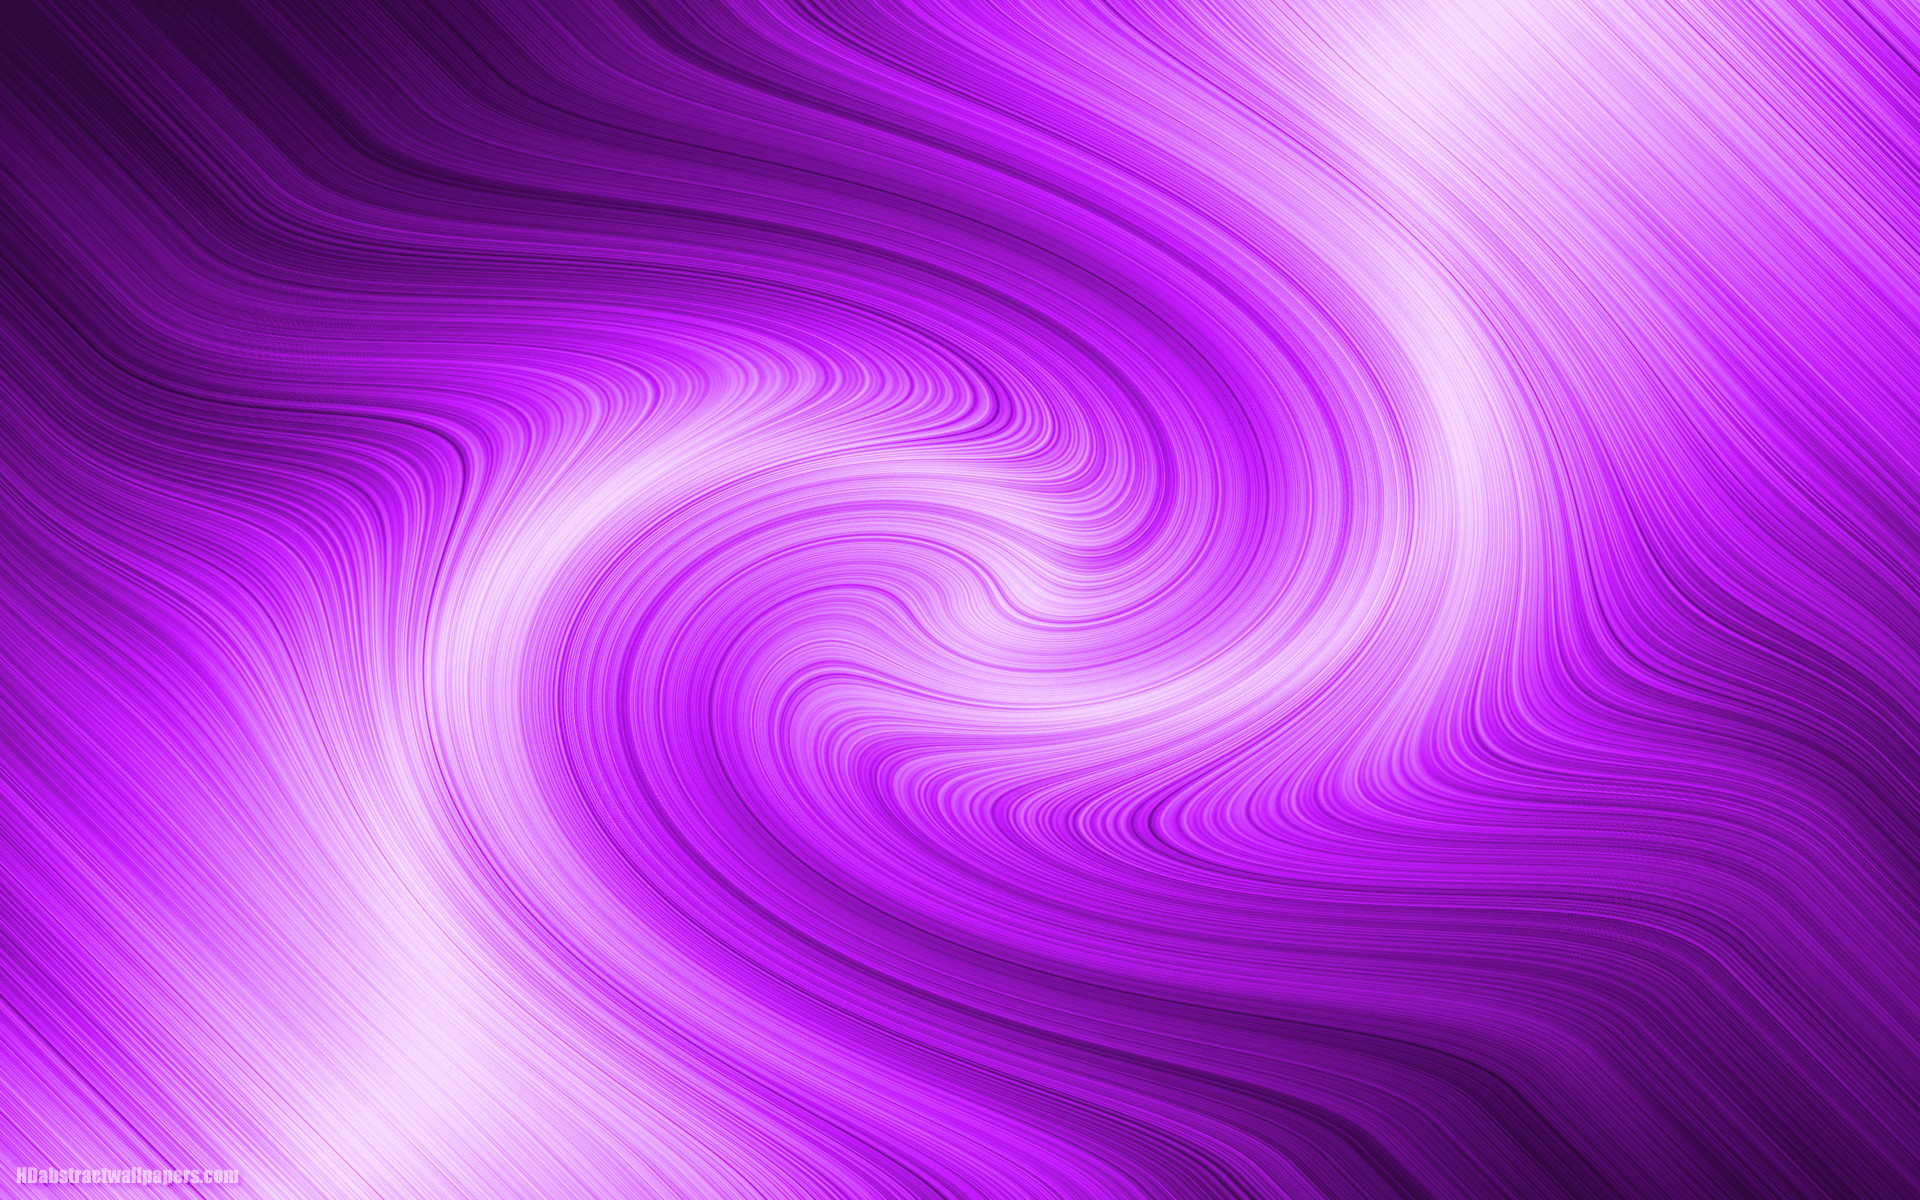 Beautiful abstract wallpaper purple with bright lights. A nice purple  background for your desktop or on Facebook or Twitter.